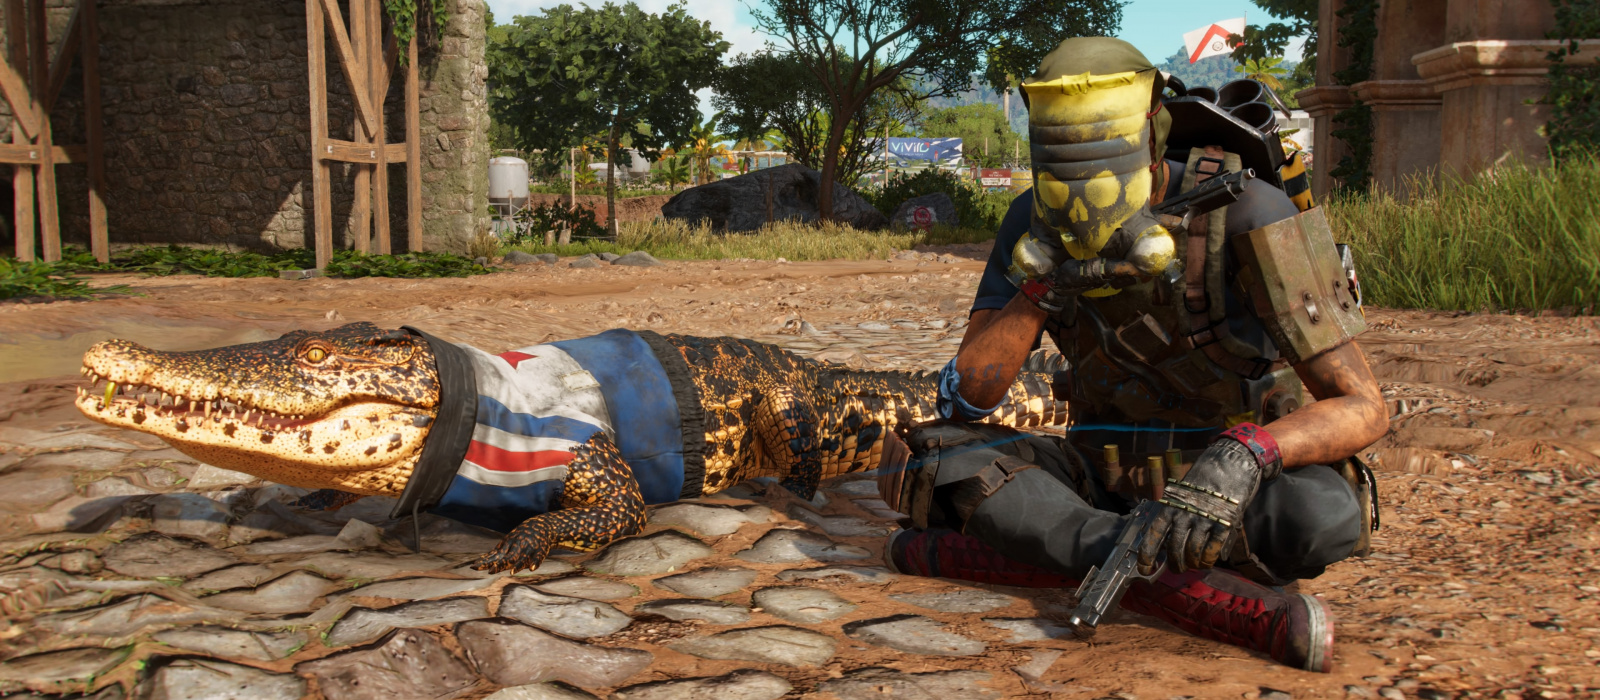 Far Cry 6 Newbie Guide - How to Choose the Best Ammo, Companion, Weapon Arsenal, and Vehicles